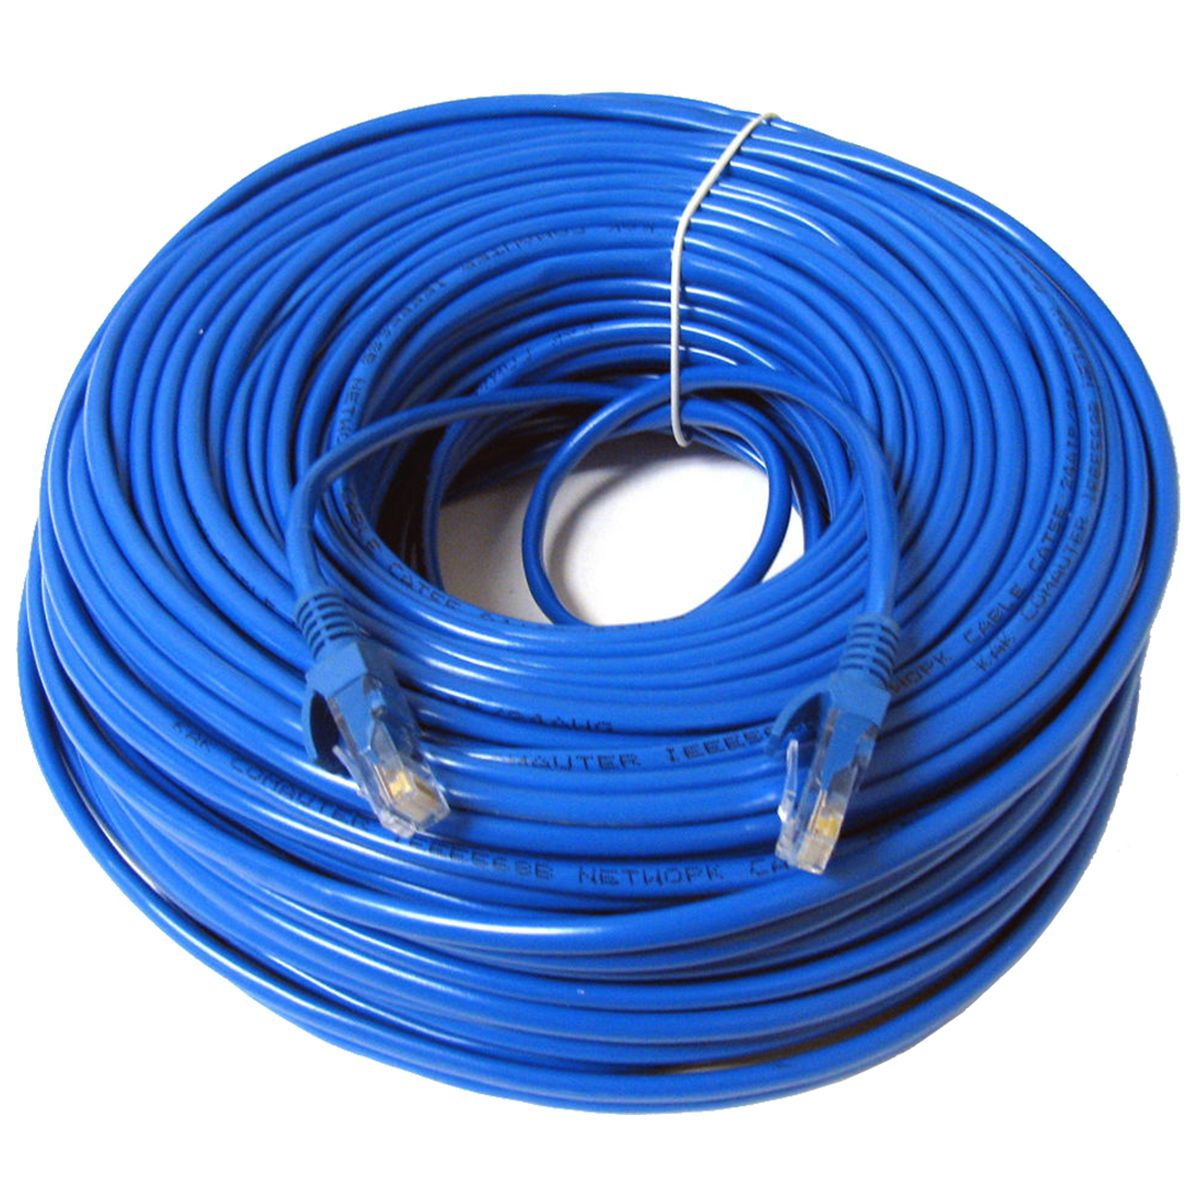 High Quality 30M Meter RJ45 CAT5 Internet Cable Lan Network Wire Internet Lead Cord Router